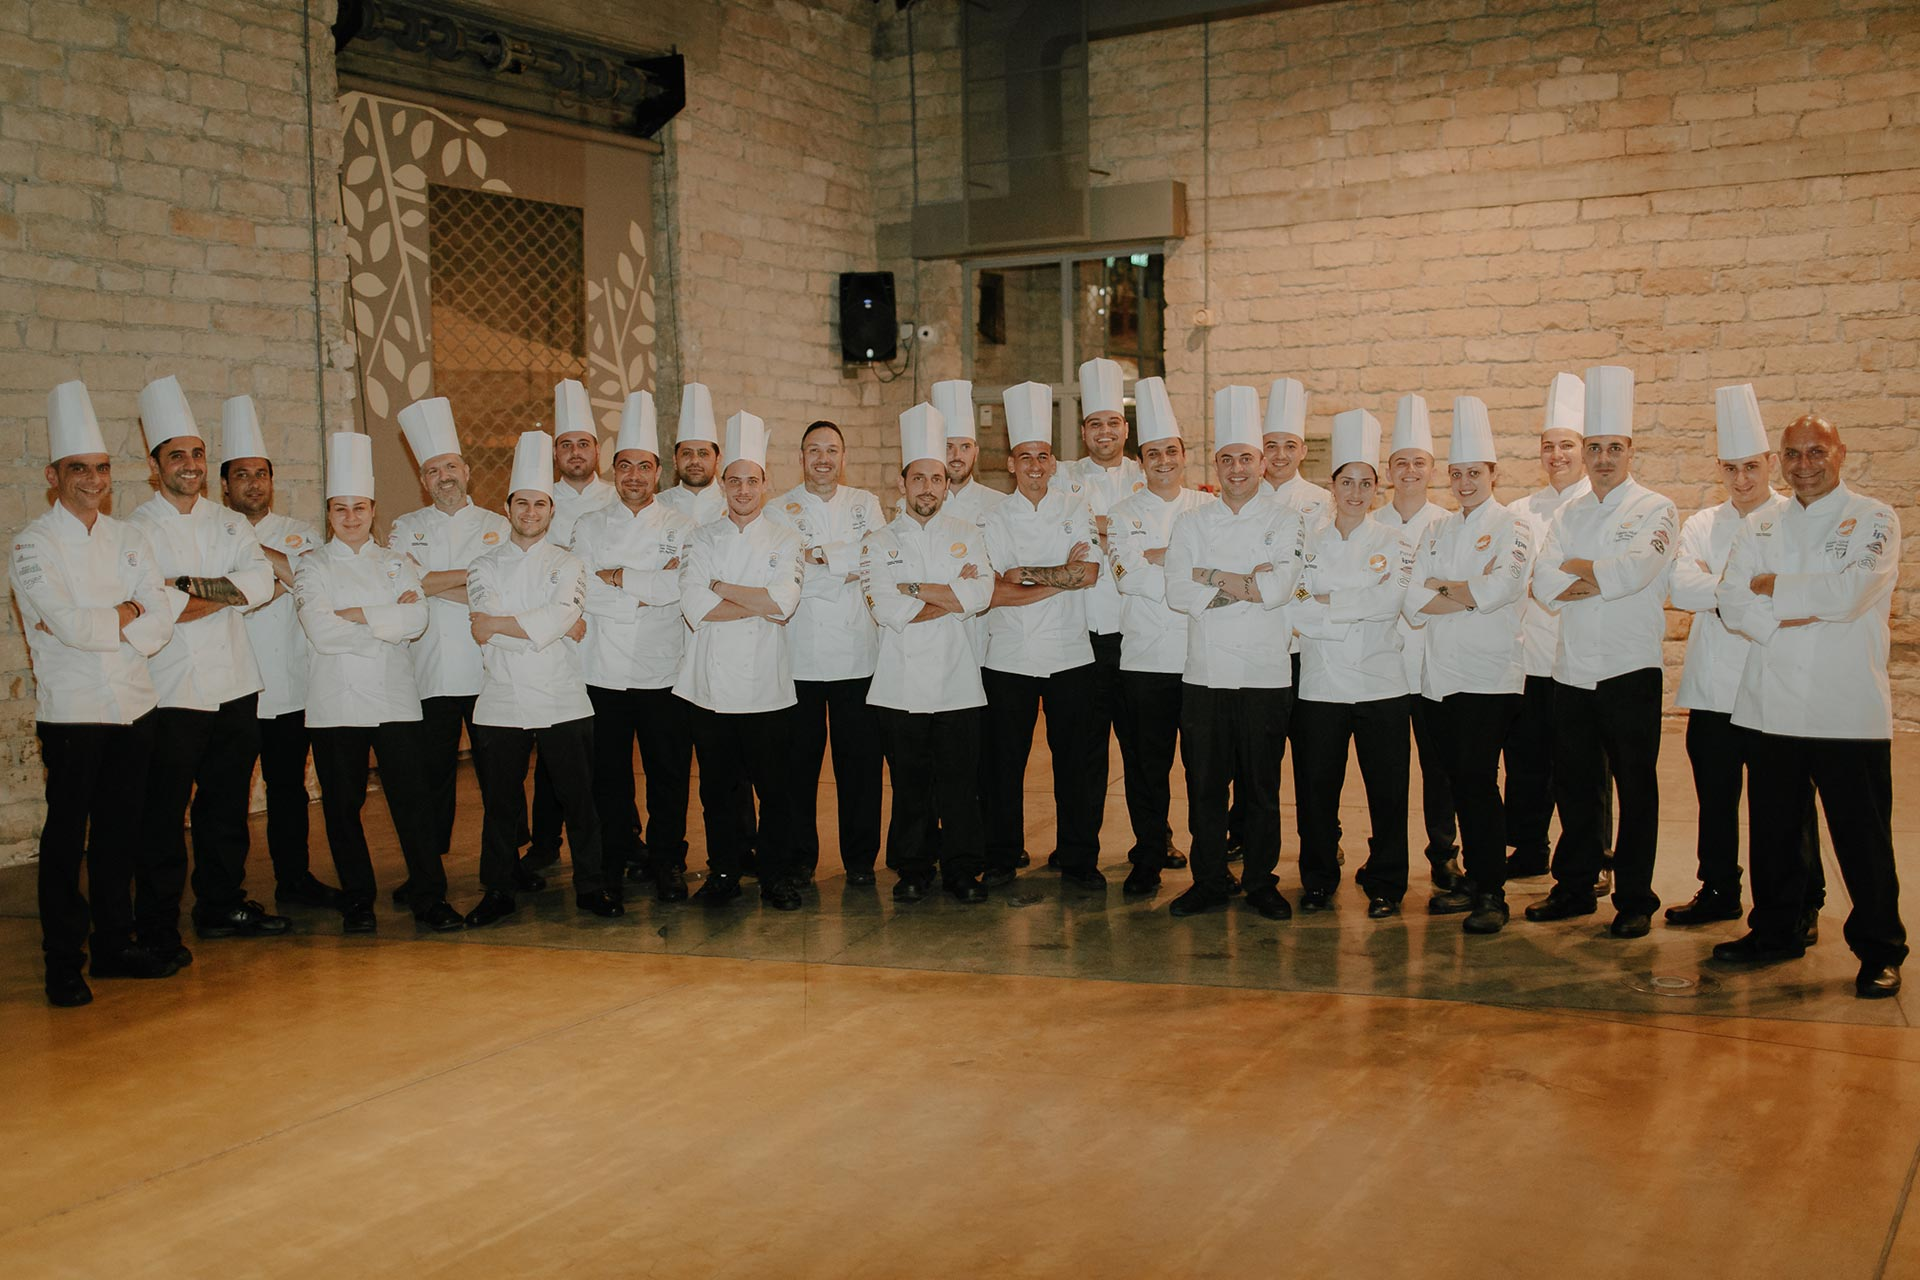 Cyprus Chefs Association - National Team Members